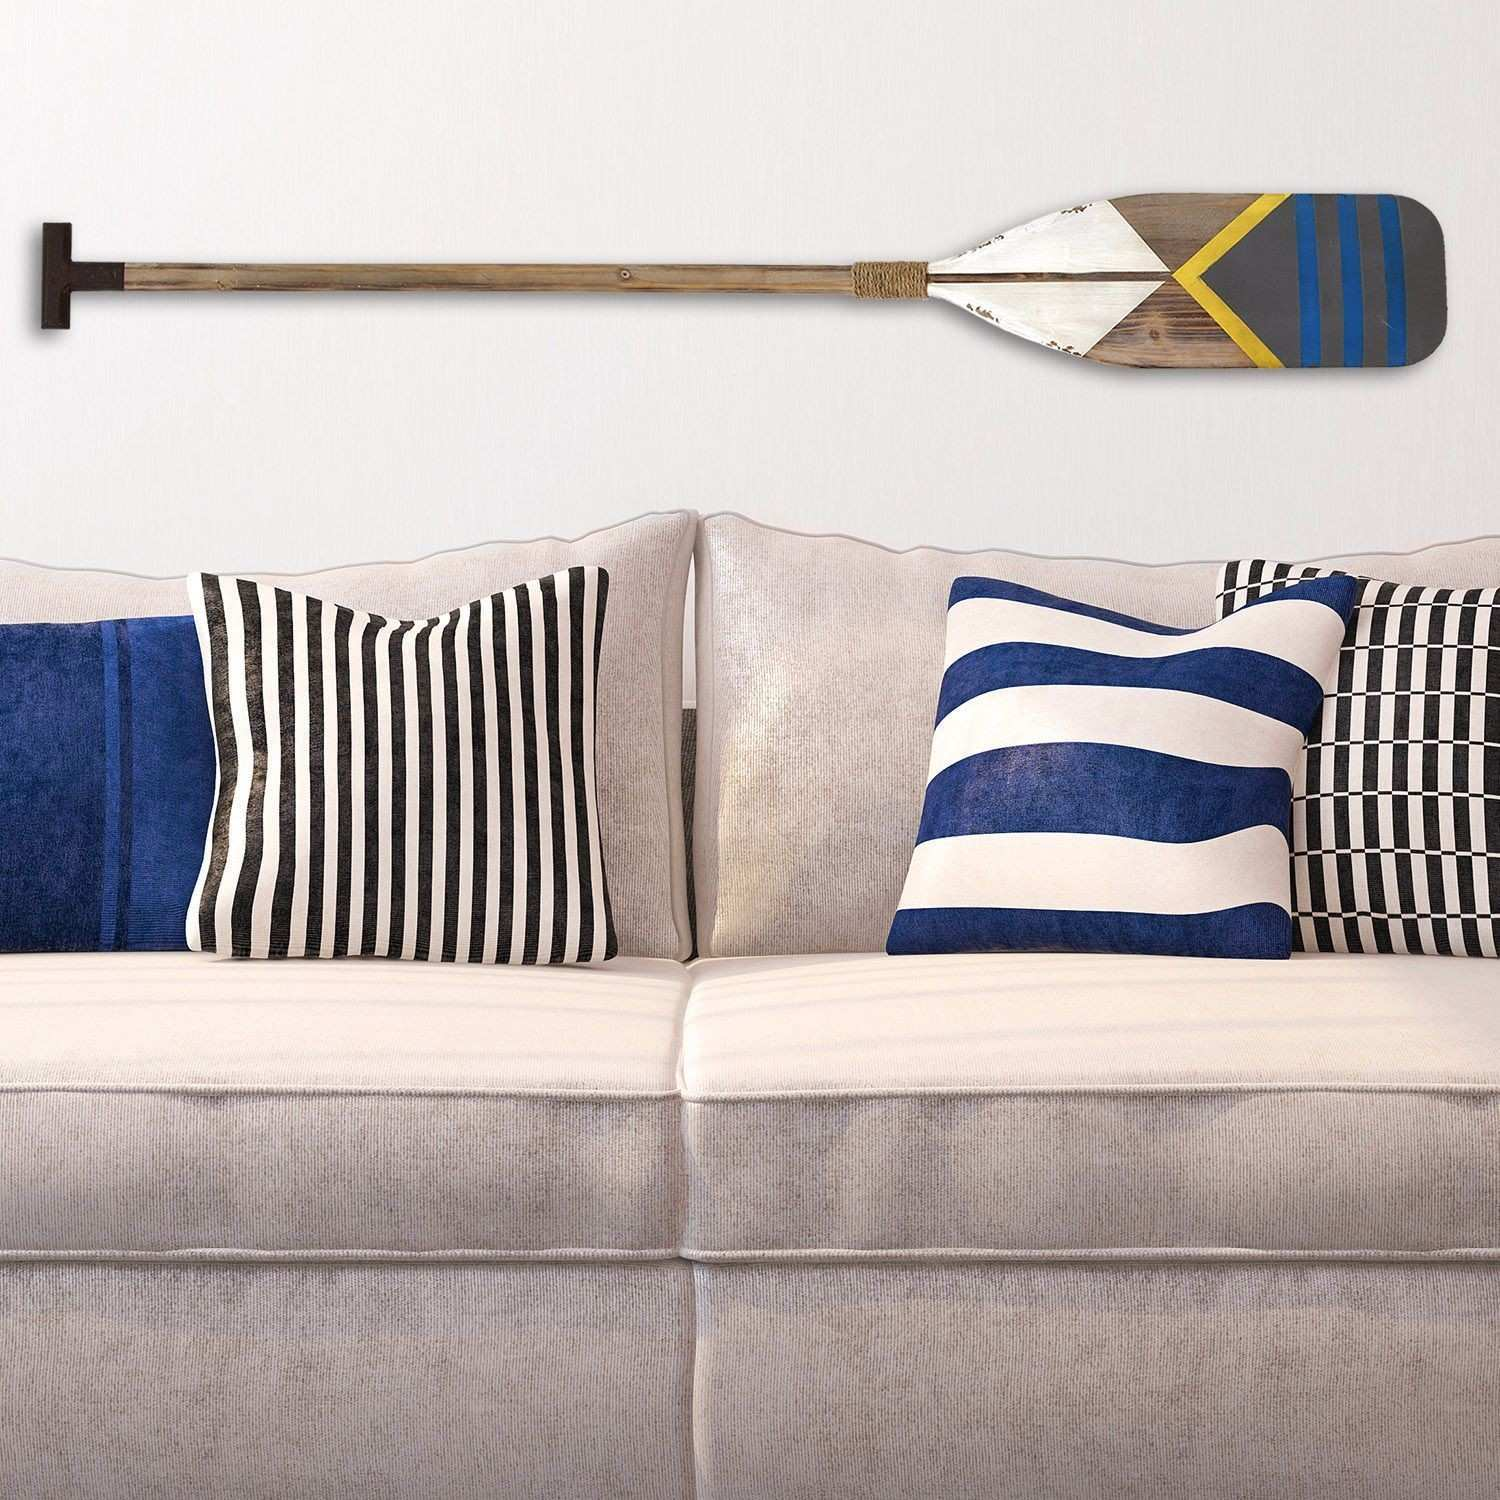 Stratton Home Decor Nautical Oar Wall Decor 8 00 X 1 75 X 60 00